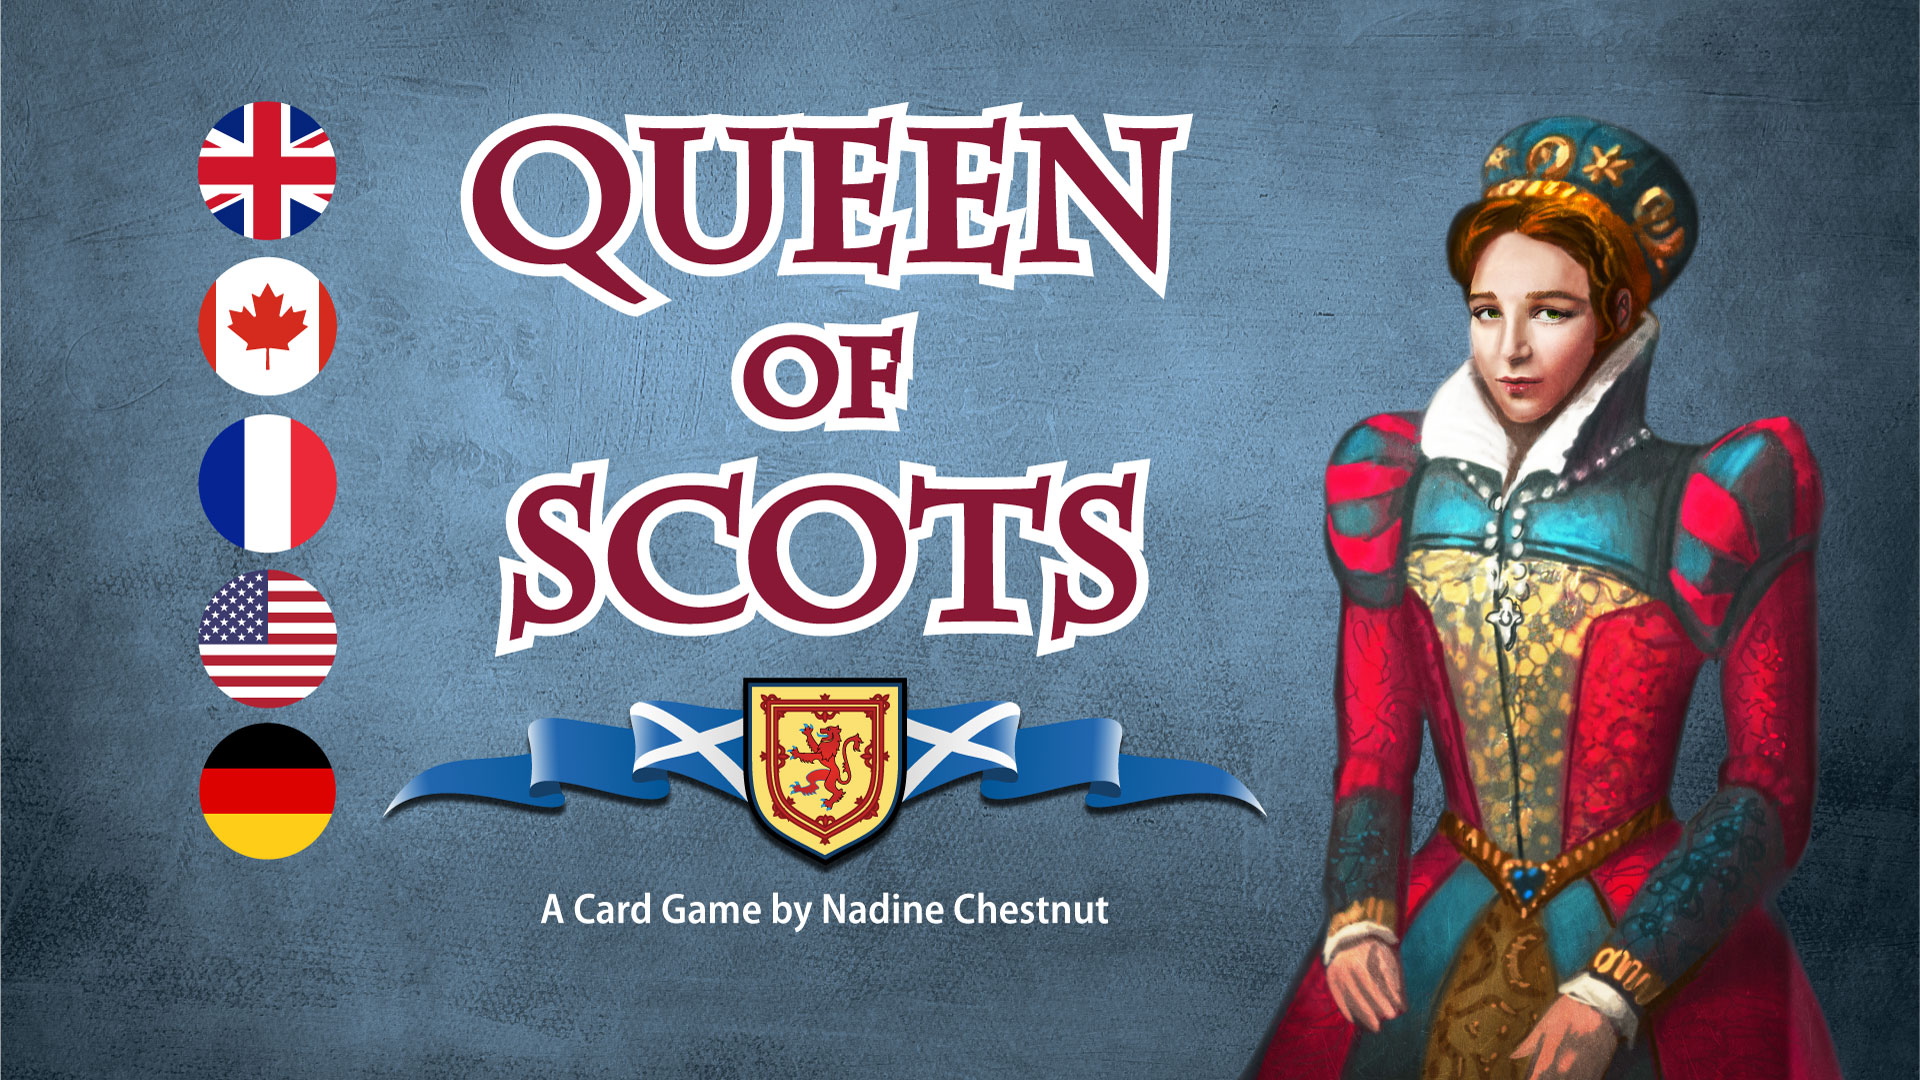 """Tin Robot Games launches """"Queenf Scots: The Card Game"""" on crowd-funding platform Kickstarter"""